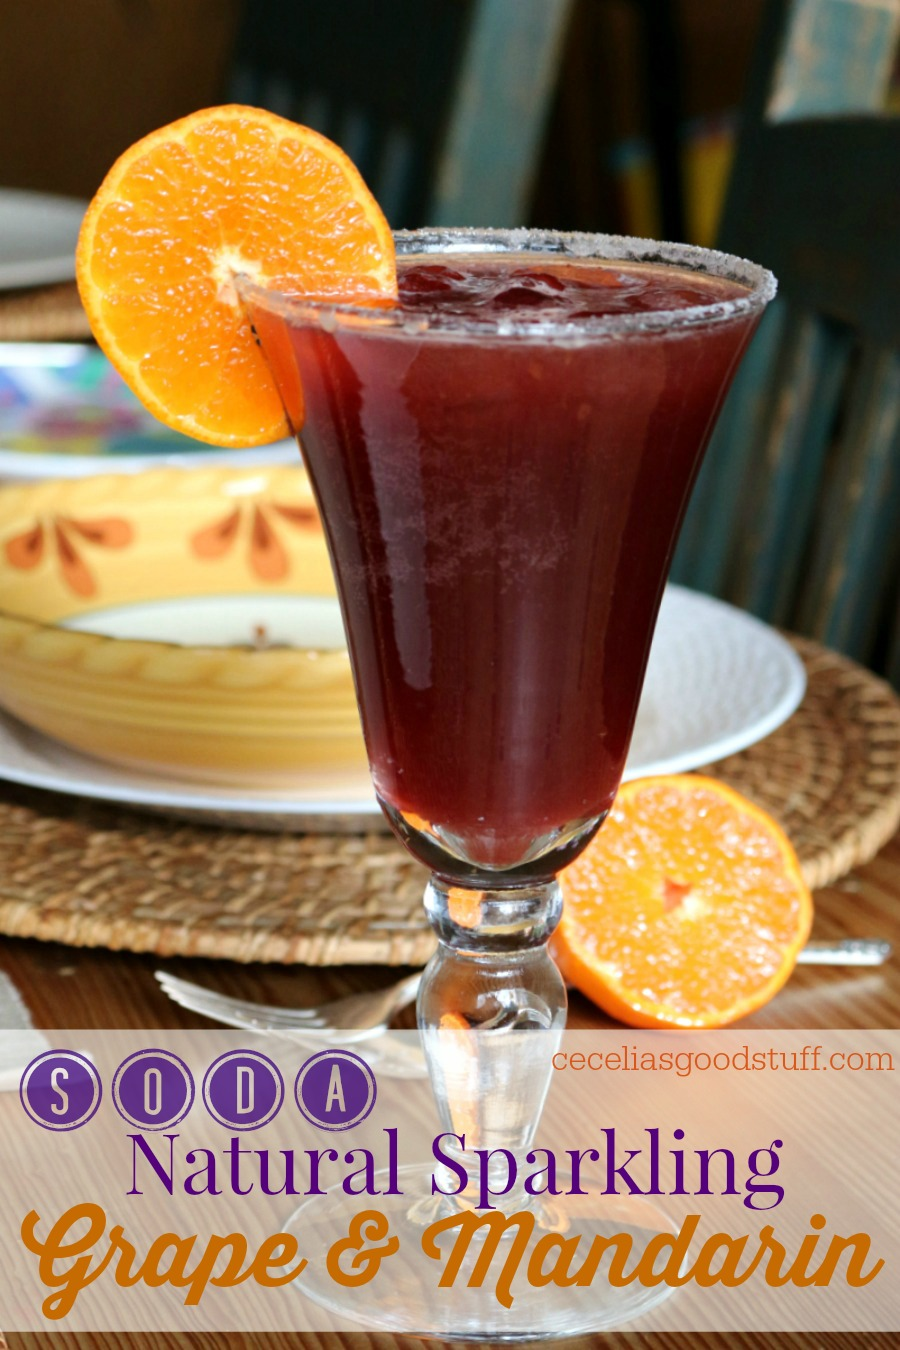 Recipe for Natural Sparking Grape & Mandarin Soda